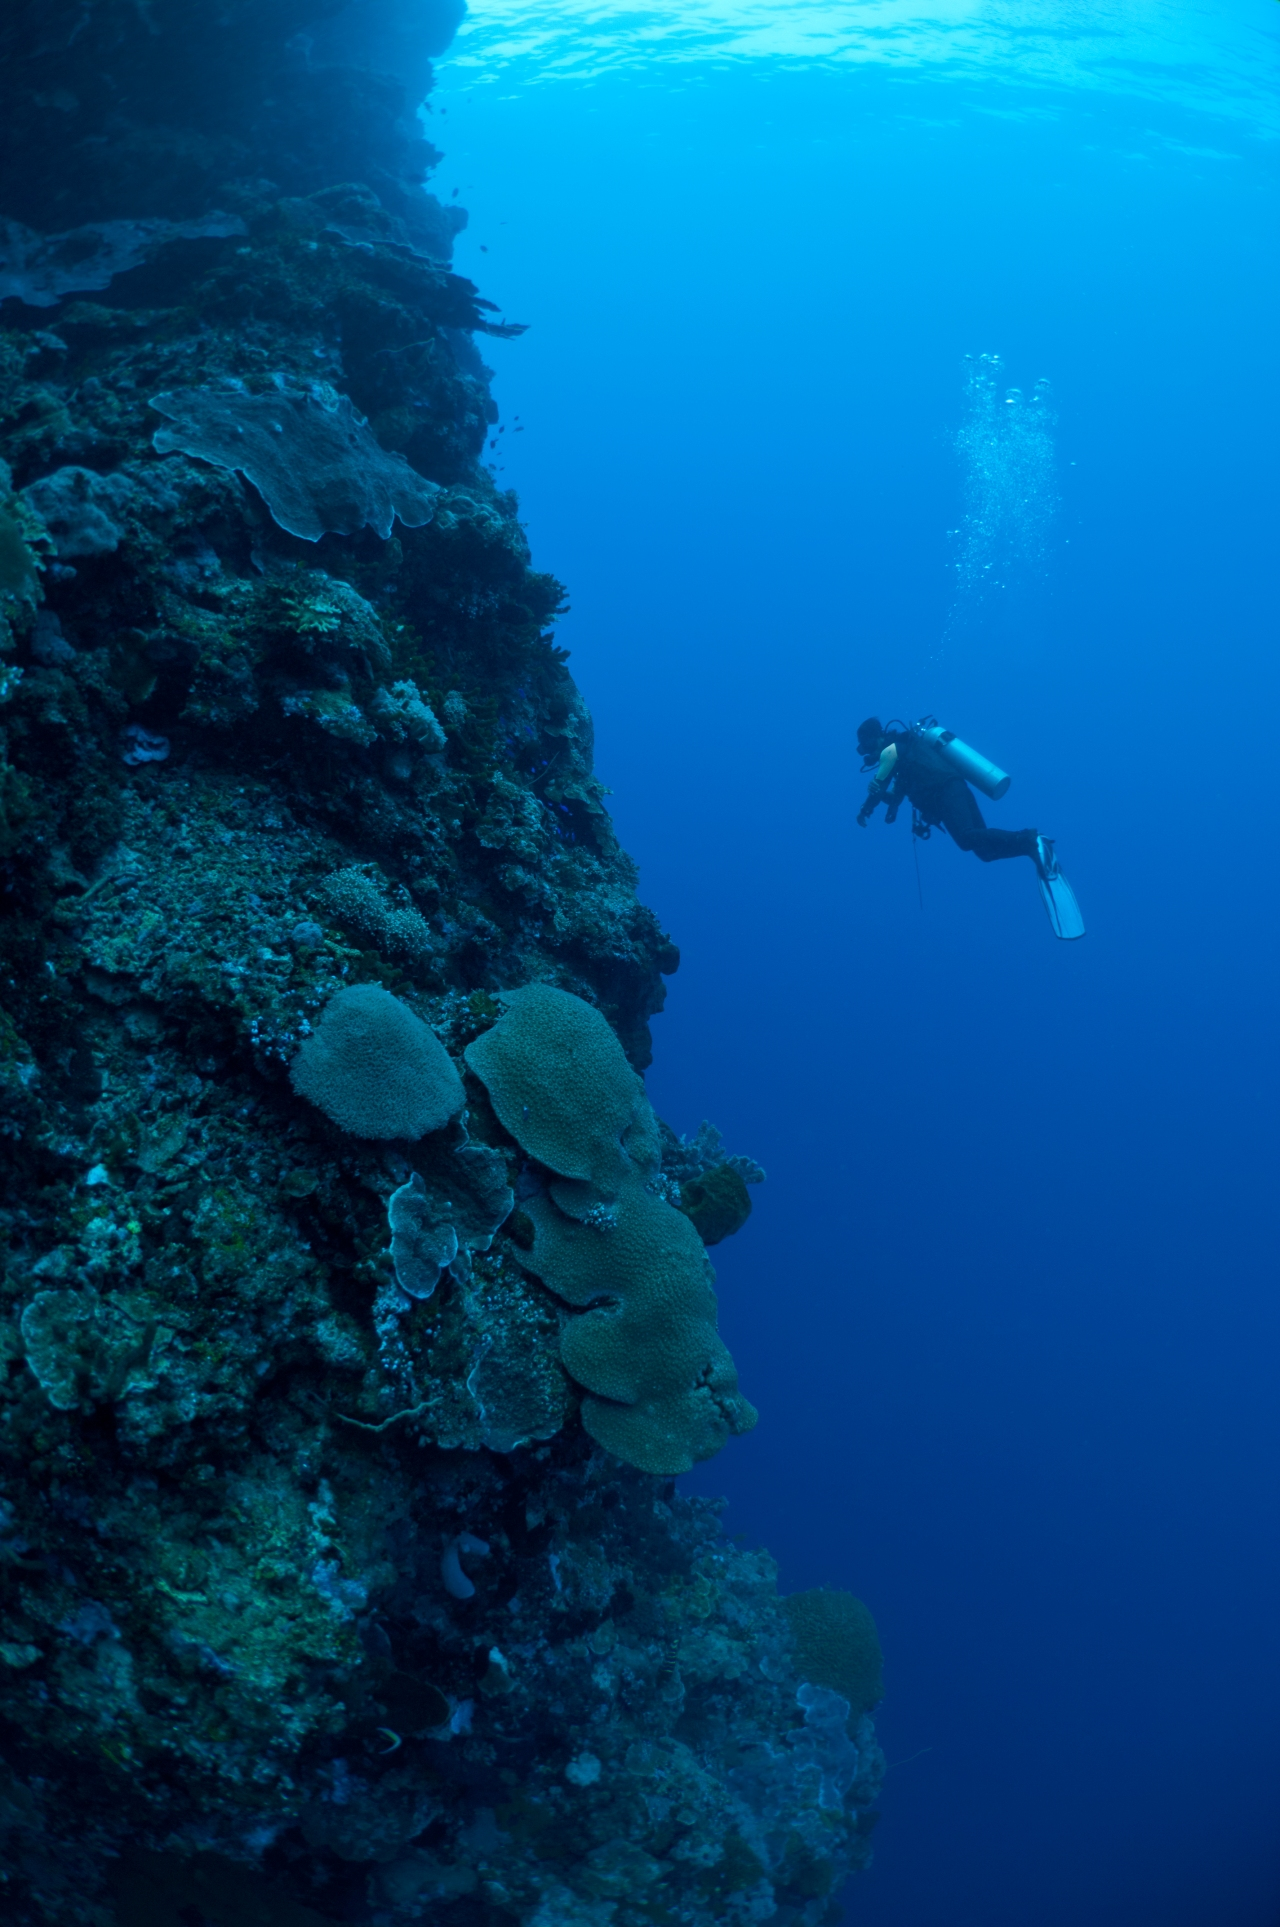 Diver on the steep reef wall of Manado Tua, Bunaken Marine Park, Manado, Sulawesi, Indonesia.